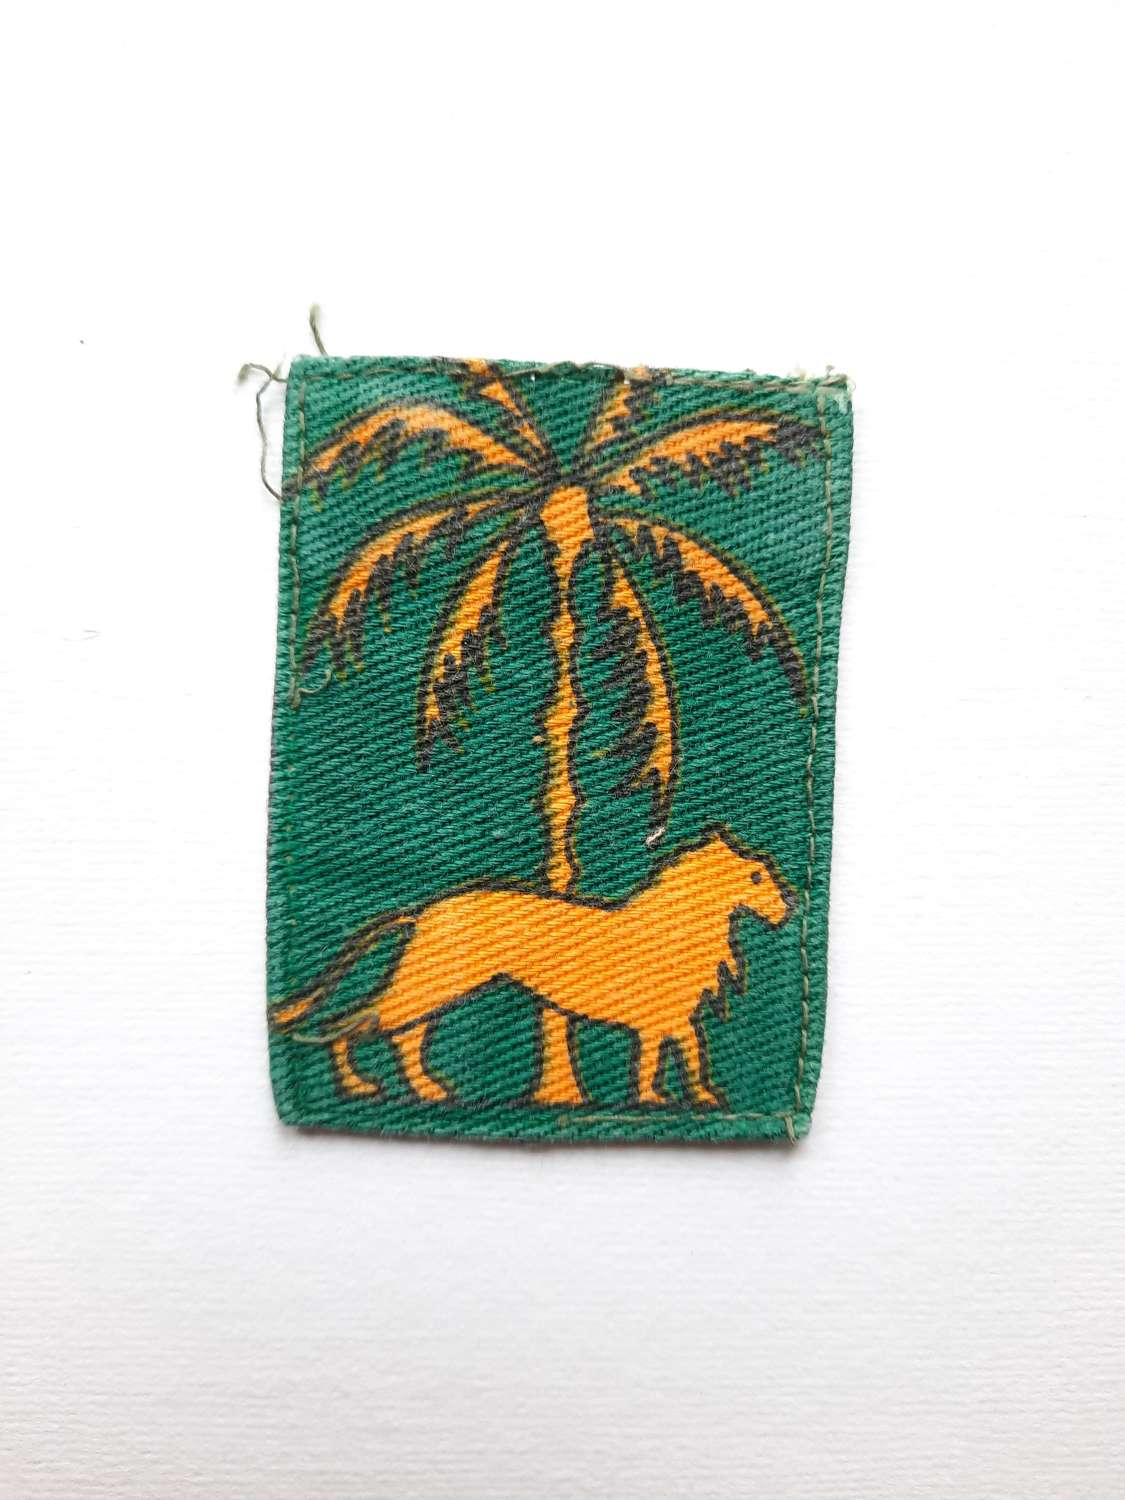 Singapore District Printed Patch